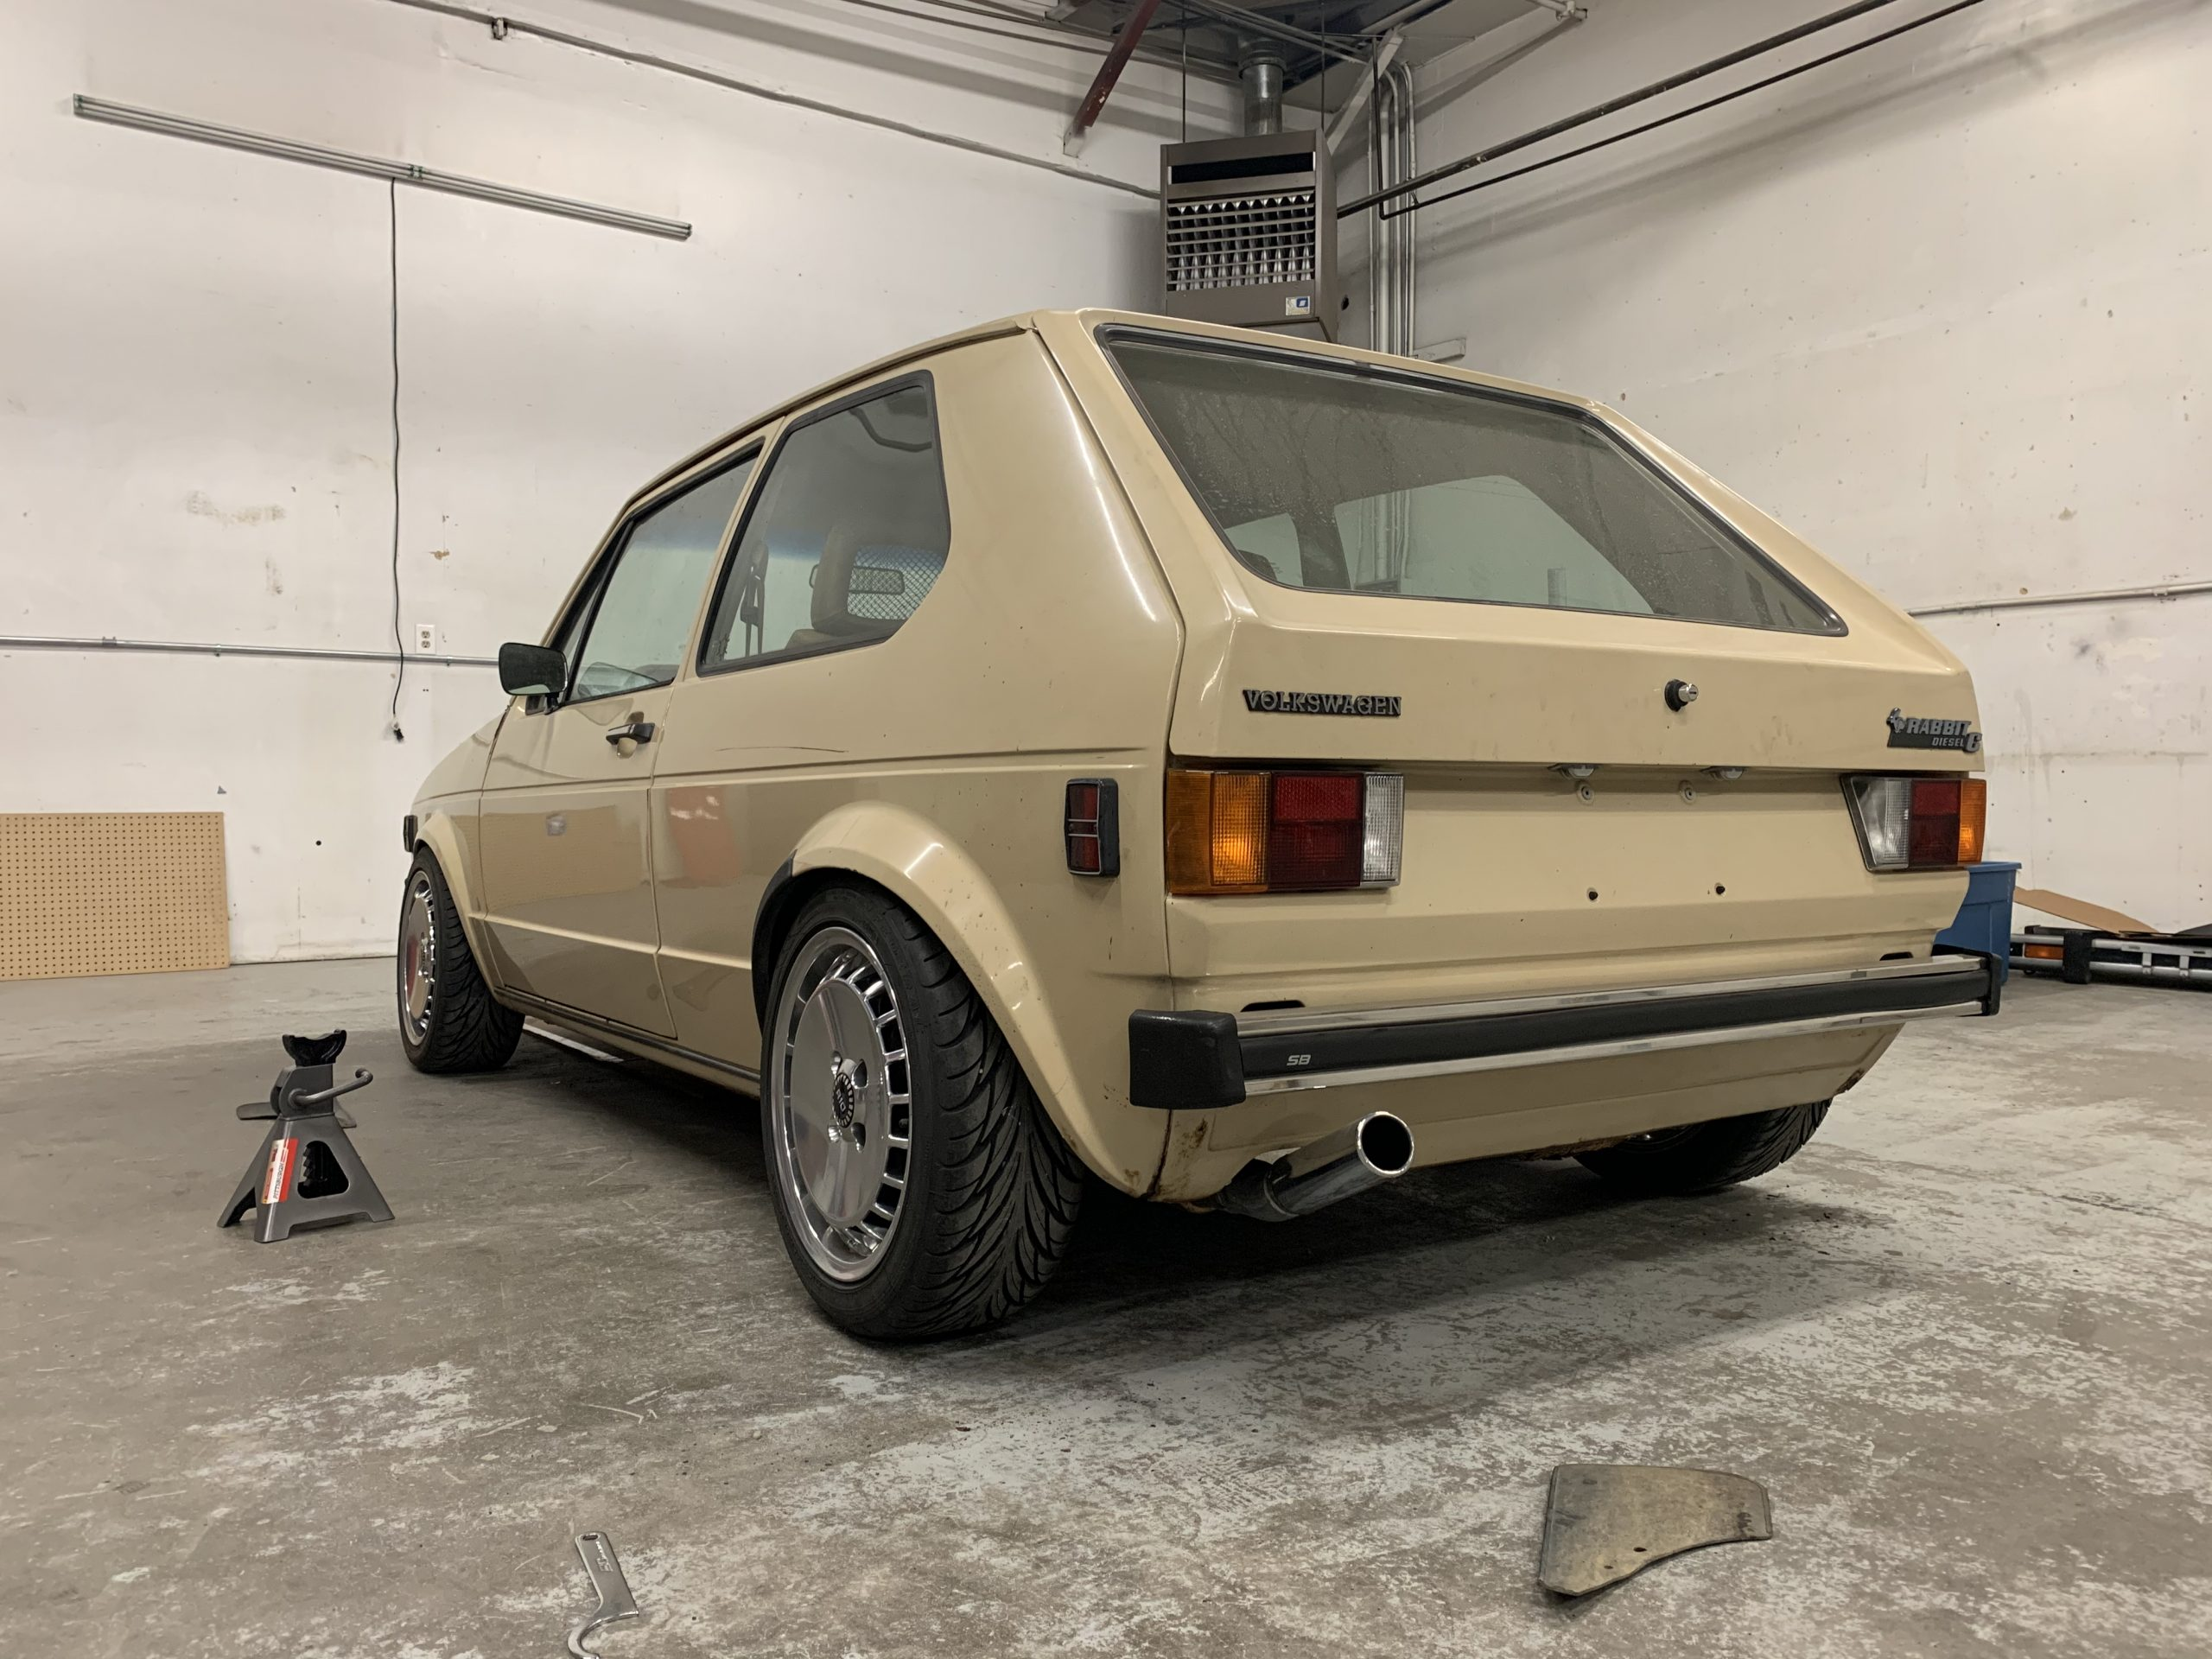 1980 VW Rabbit TDI swap shop rear Feb 27, 2 40 15 PM